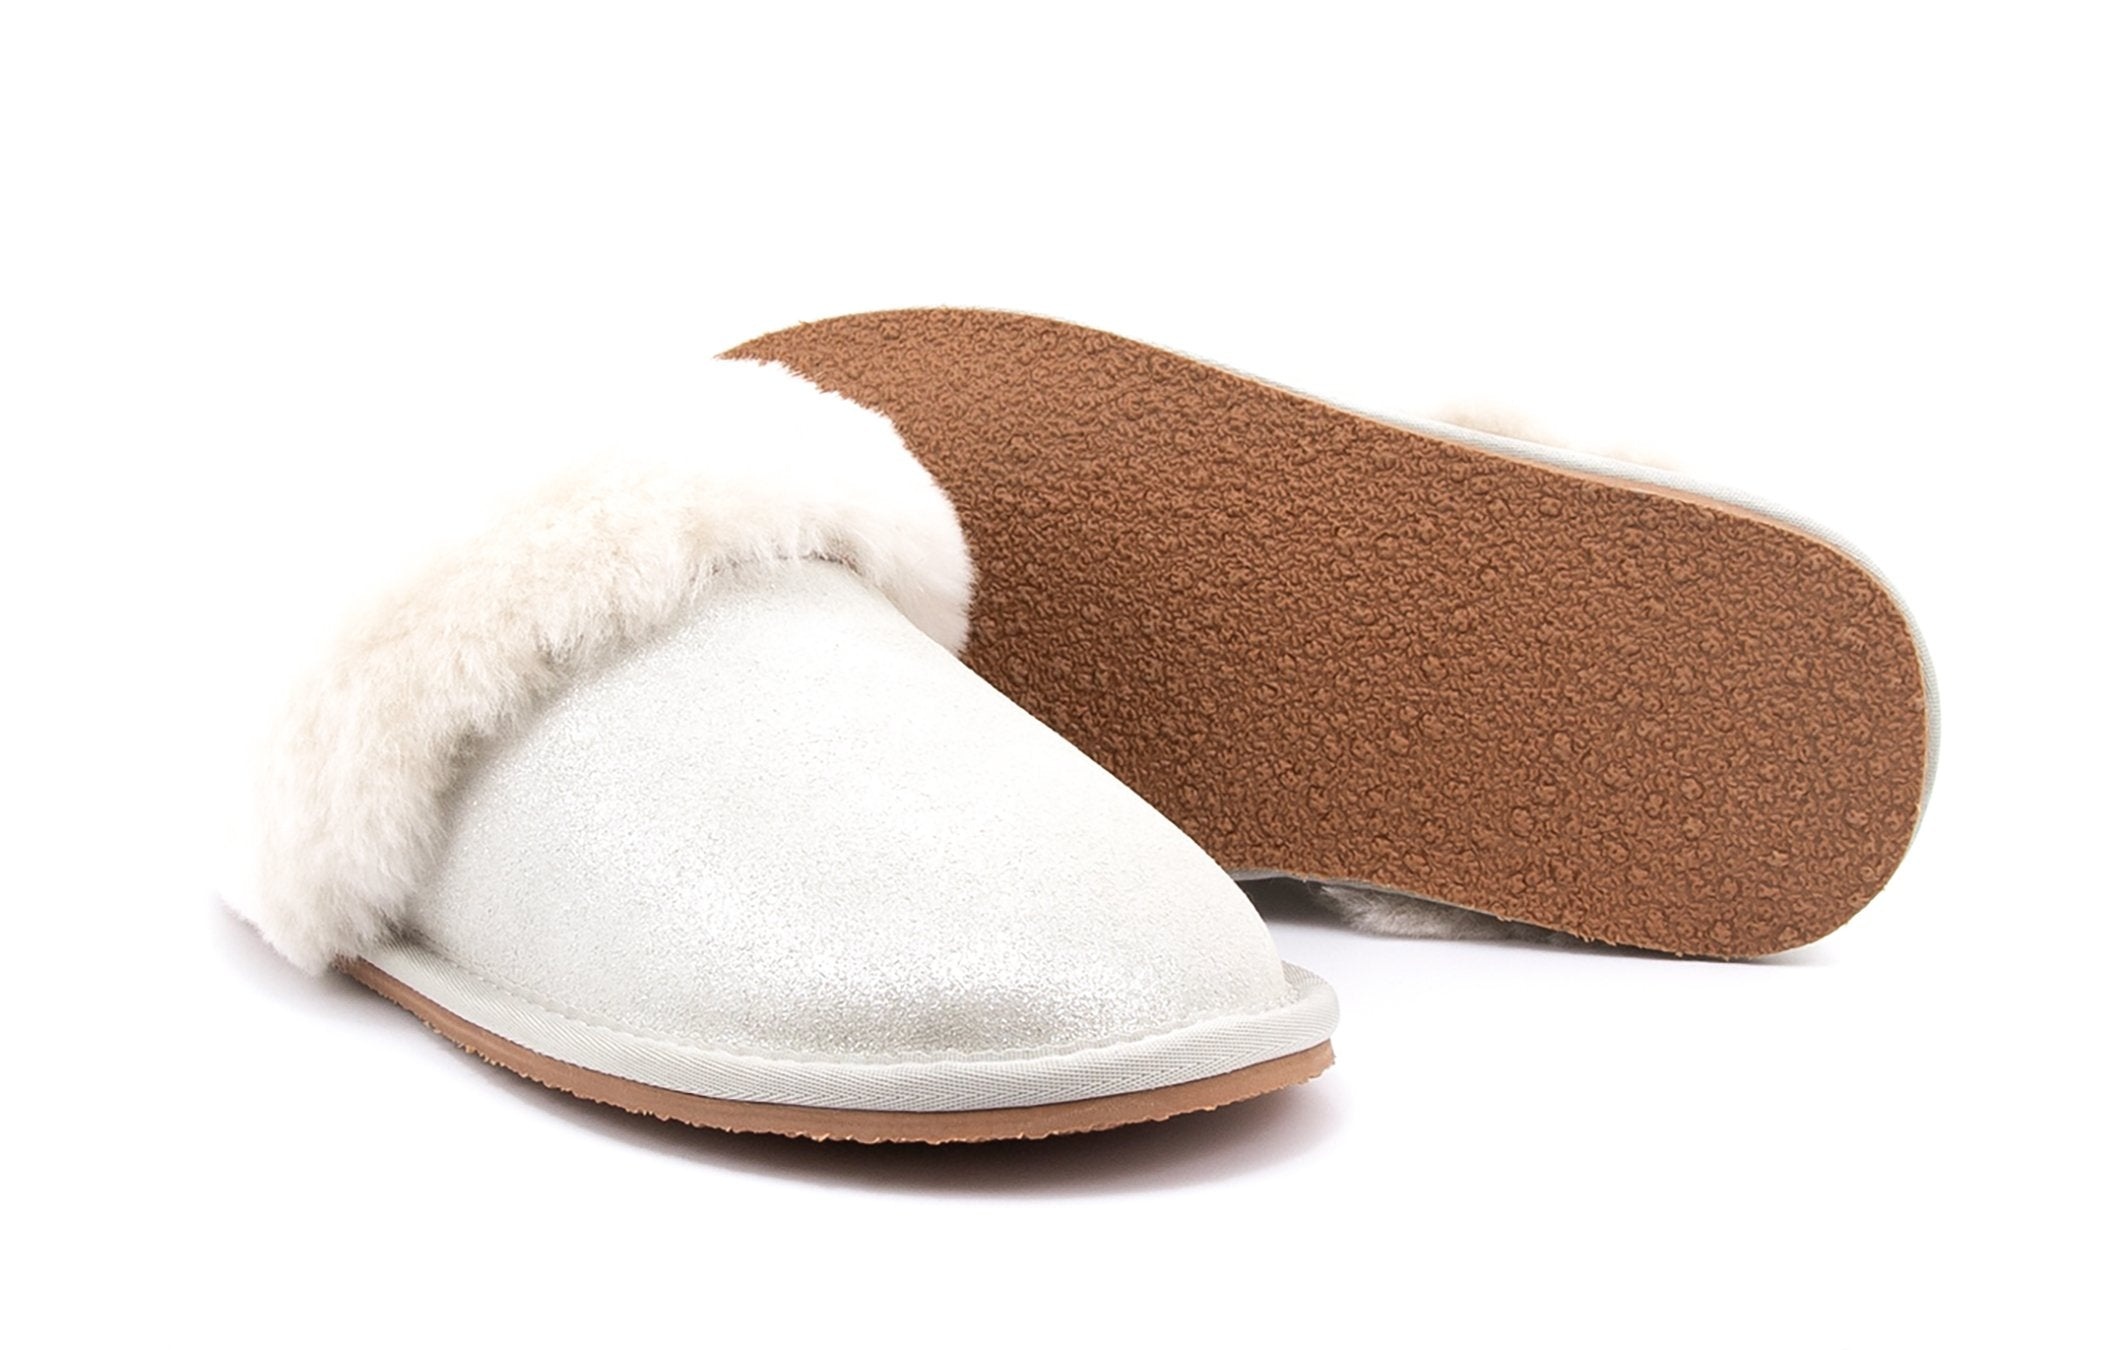 ZEROSTRESS® Tanya 7004 Women's Shearling Slippers with Thermoplastic Ruber Sole - Alfred Cloutier Ltd. - Canada